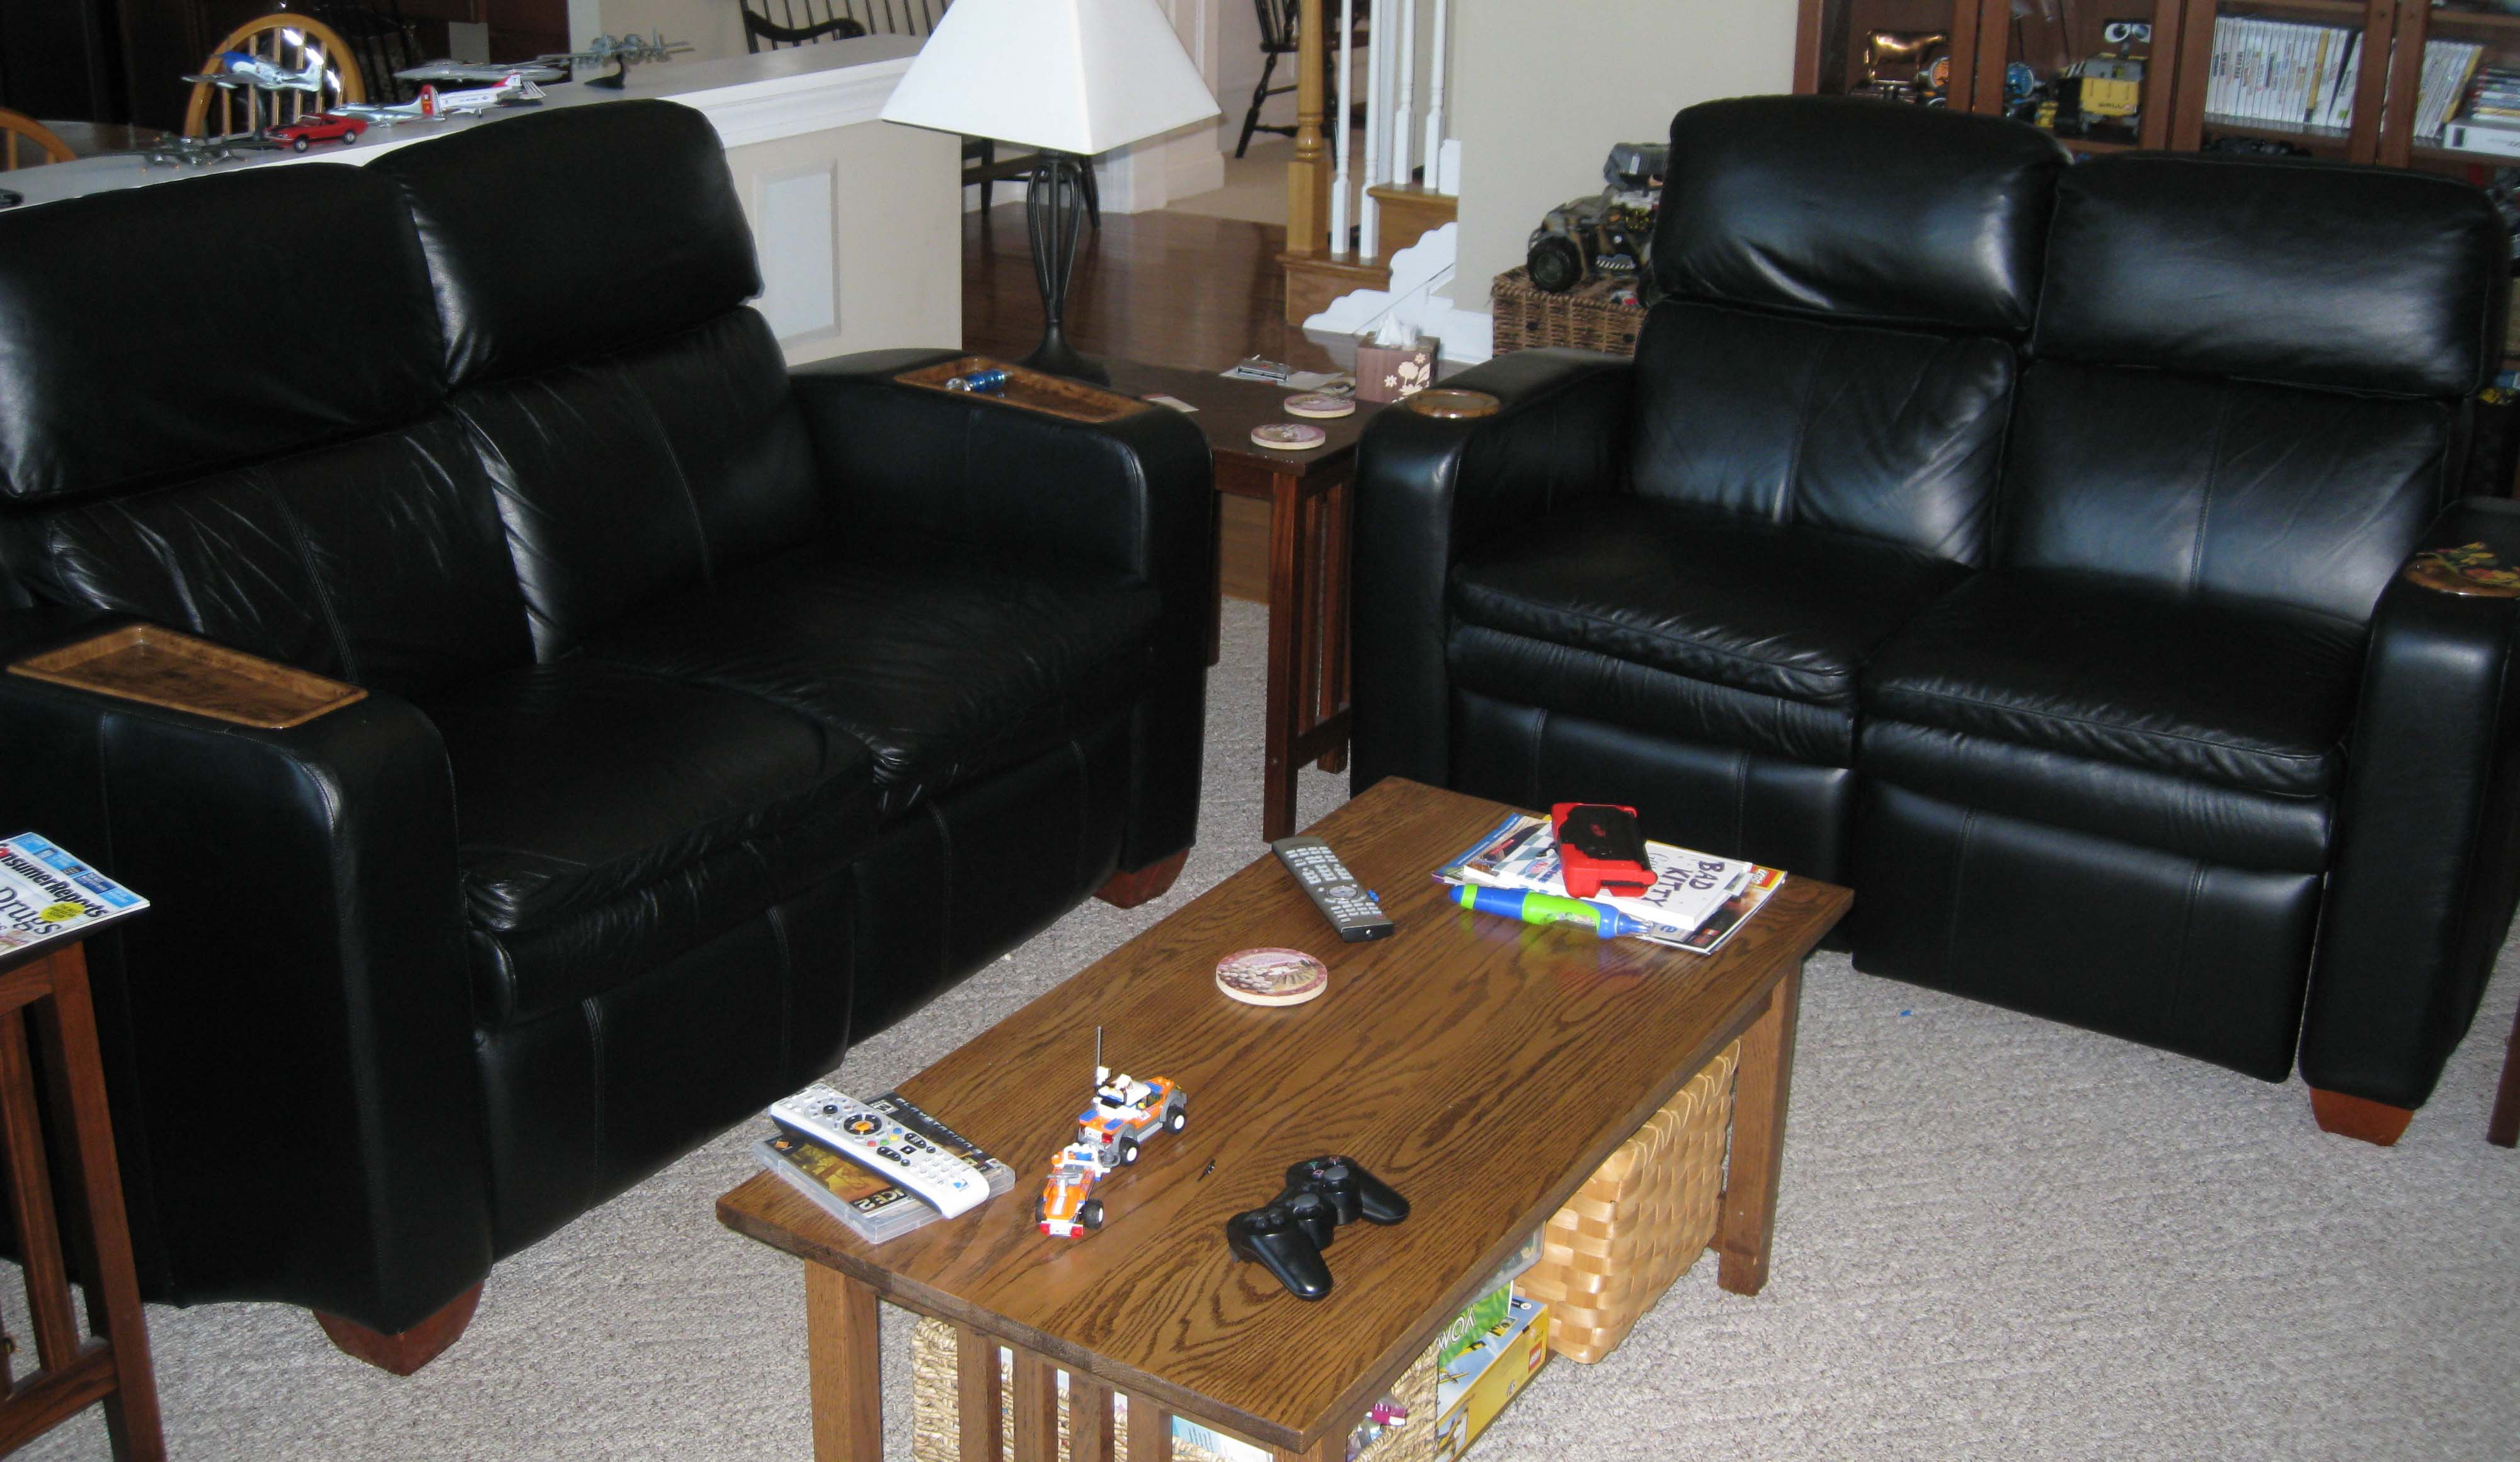 the product is the la z boy matinee home theater seating so we ordered the stuff and 2 months later it arrived fantastic